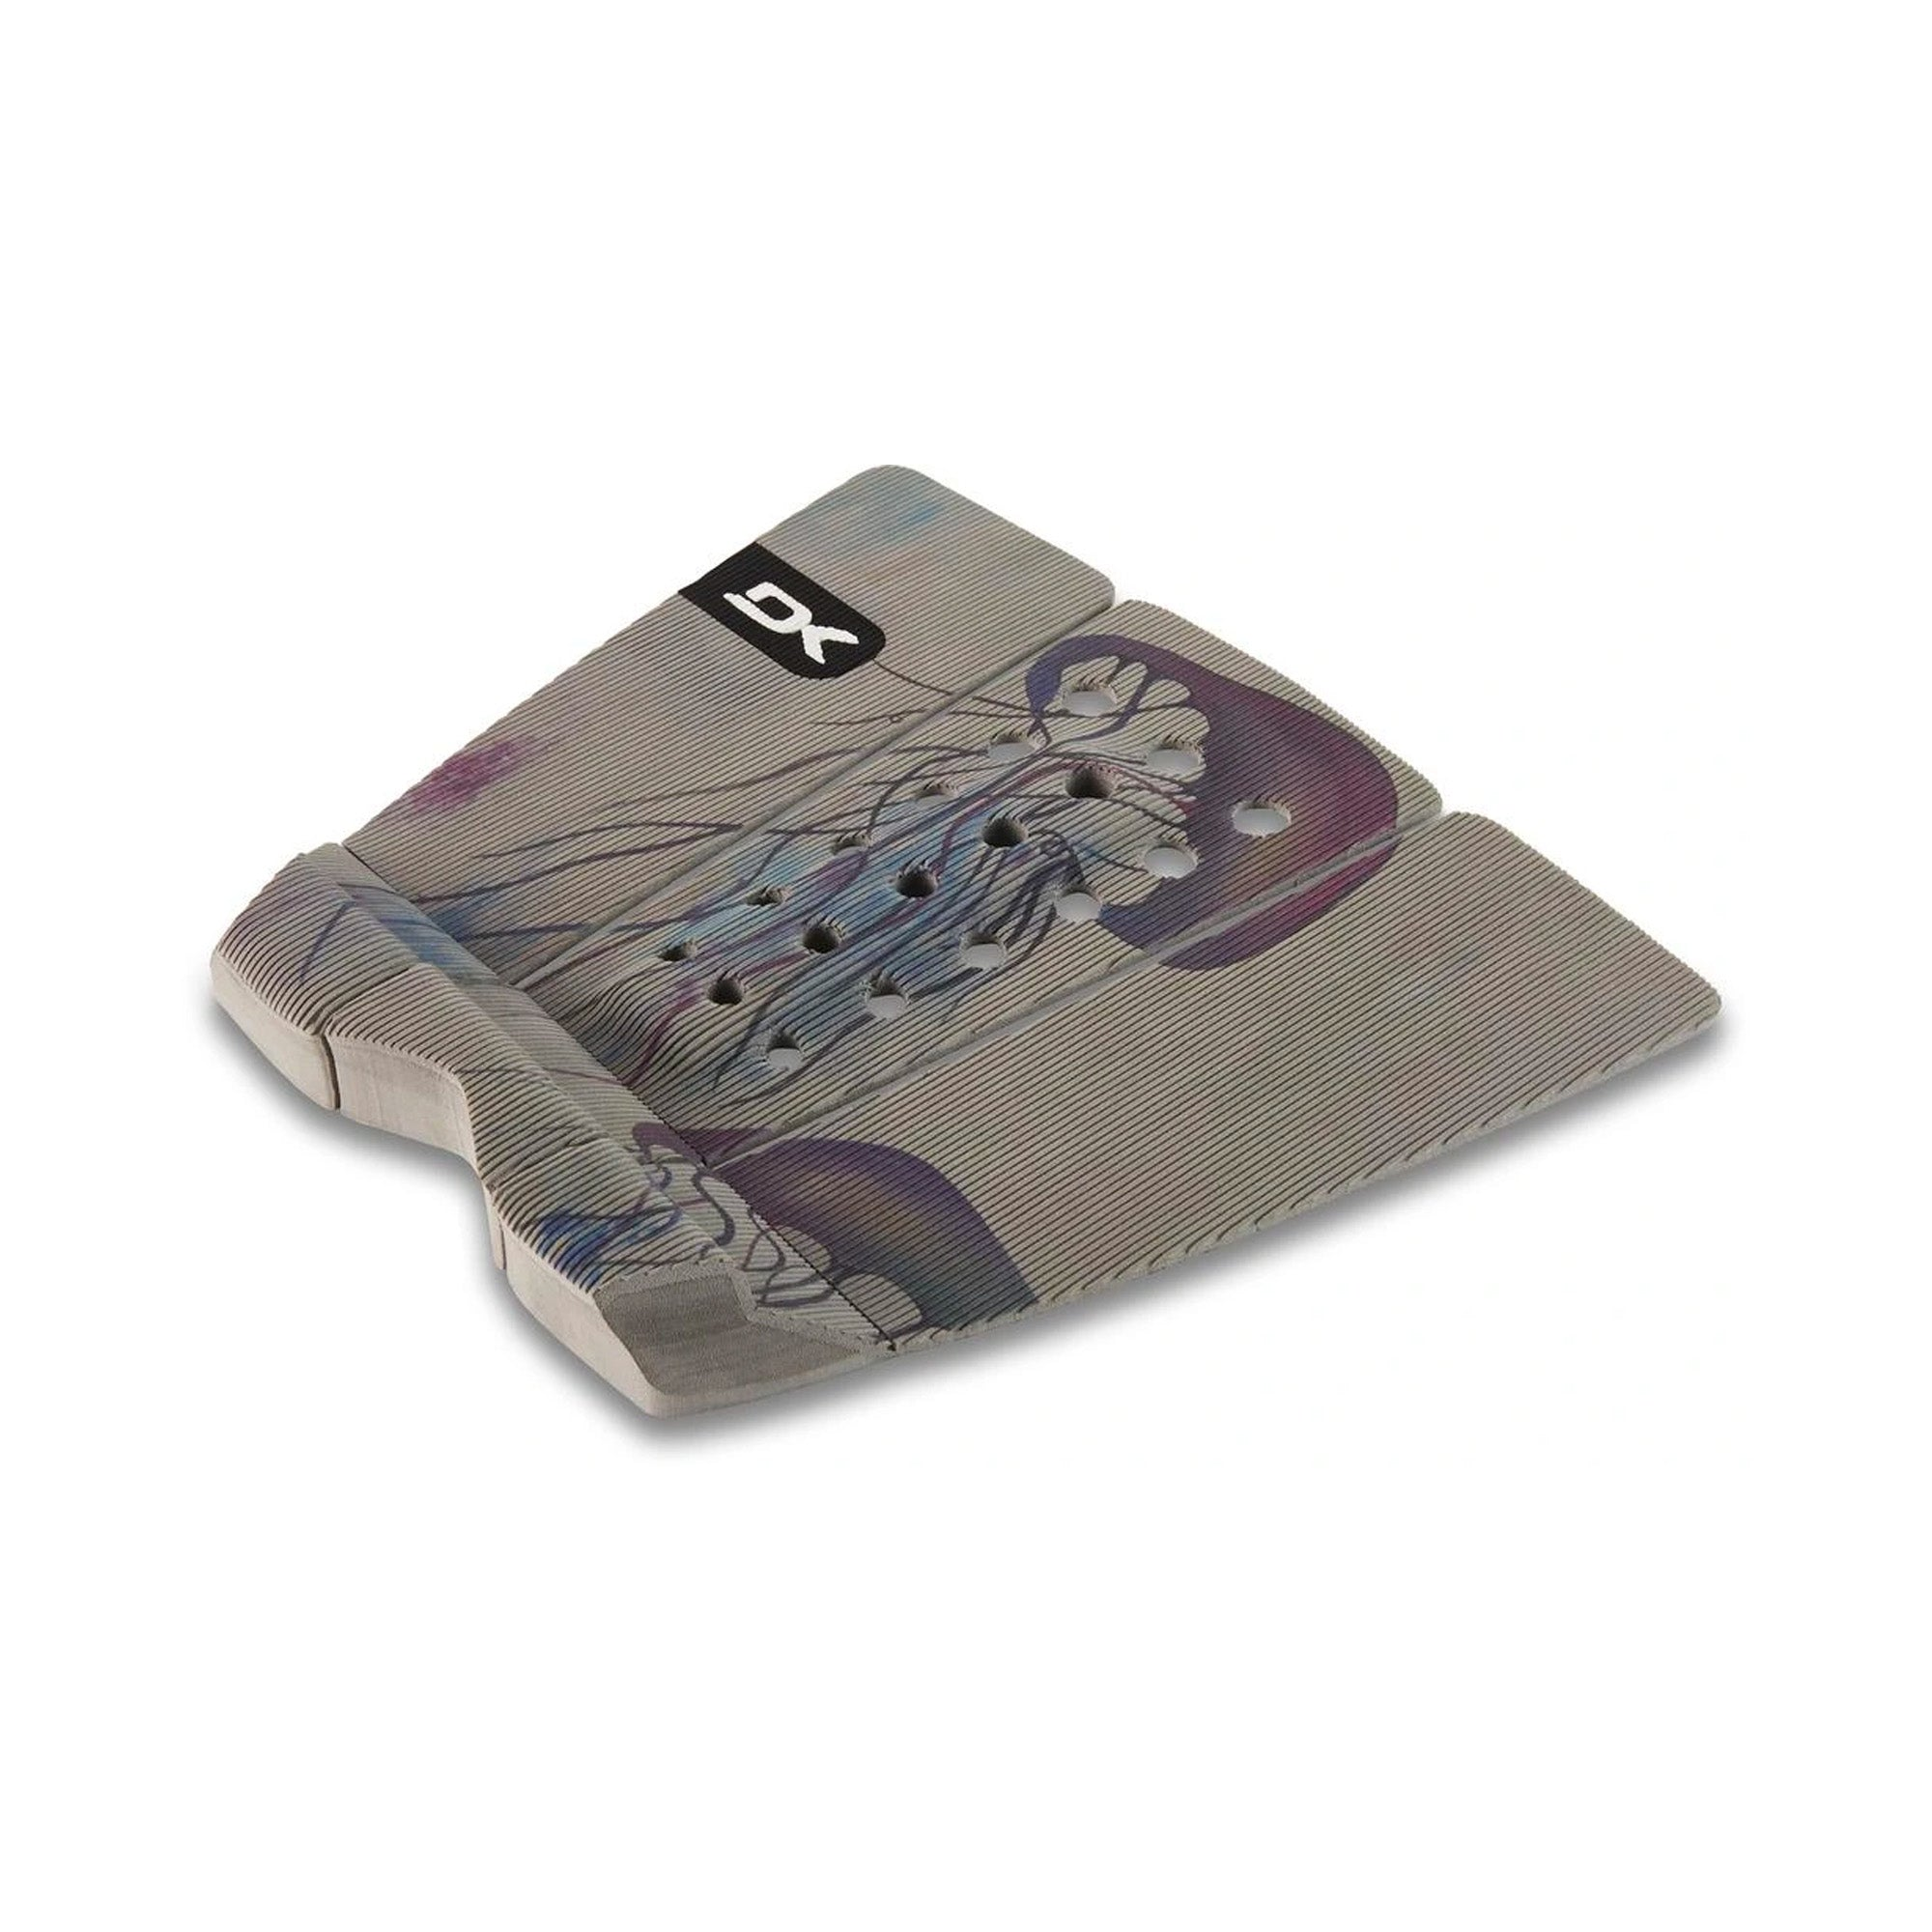 Dakine Albee Layer Arch Traction Pad - Jellyfish